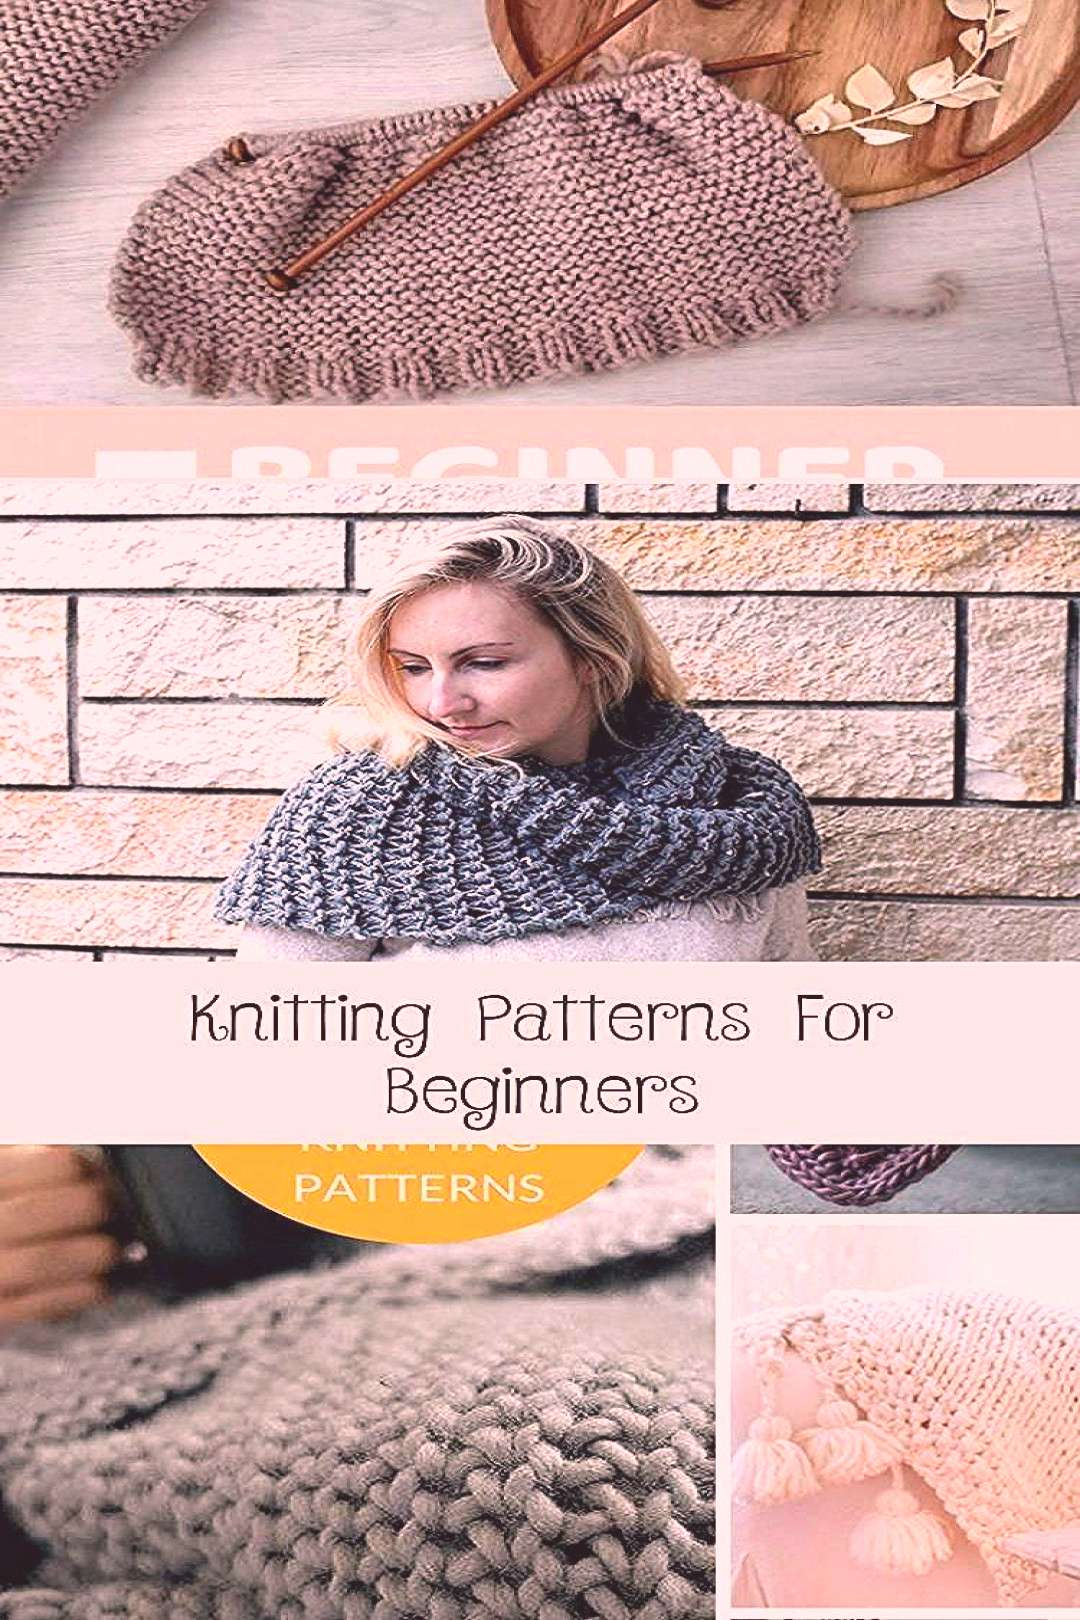 Easy knitting patterns for beginners - including fingerless mittens, scarves and | simple knitting